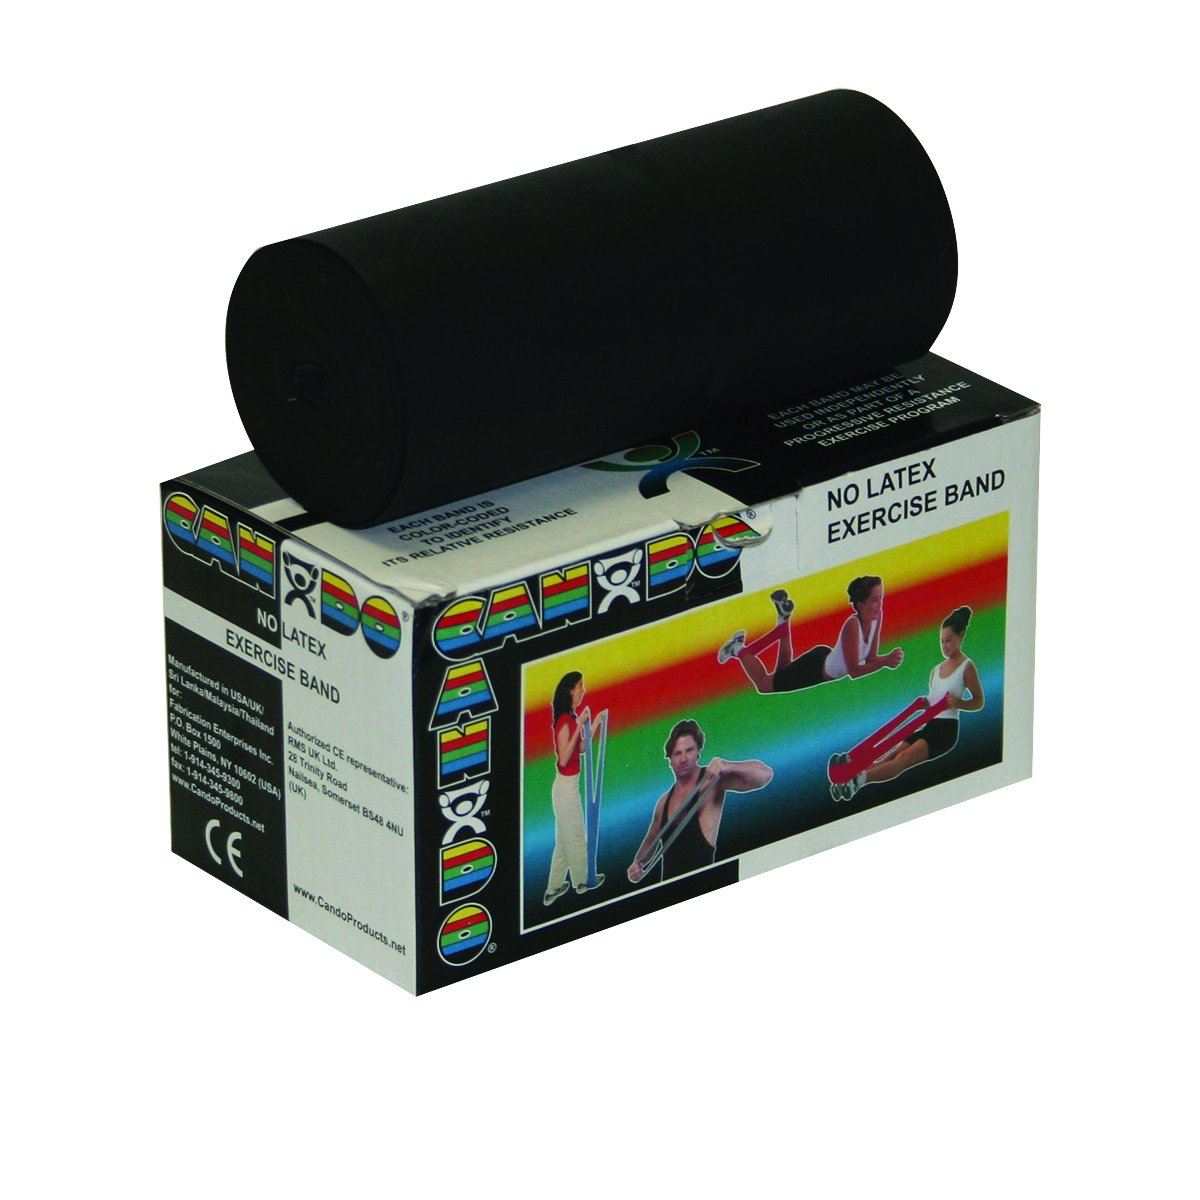 Cando 10-5615 Black Latex-Free Exercise Band, X-Heavy Resistance, 6 yd Length